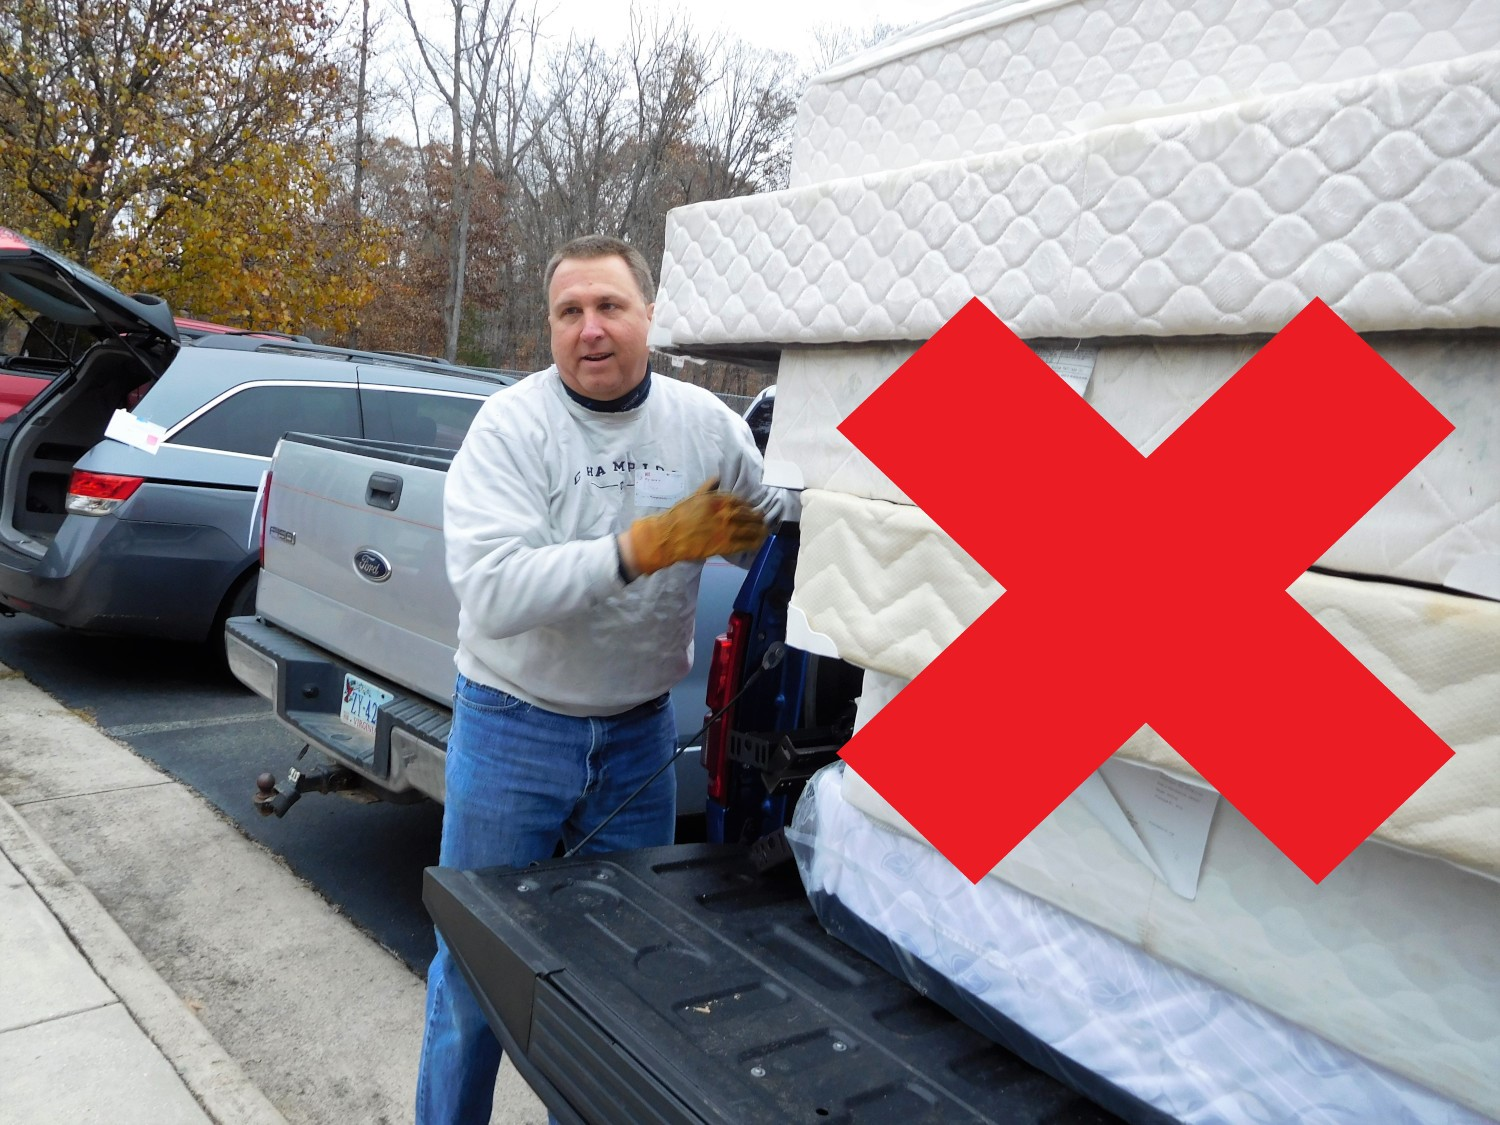 This truck is too small to transport these mattresses